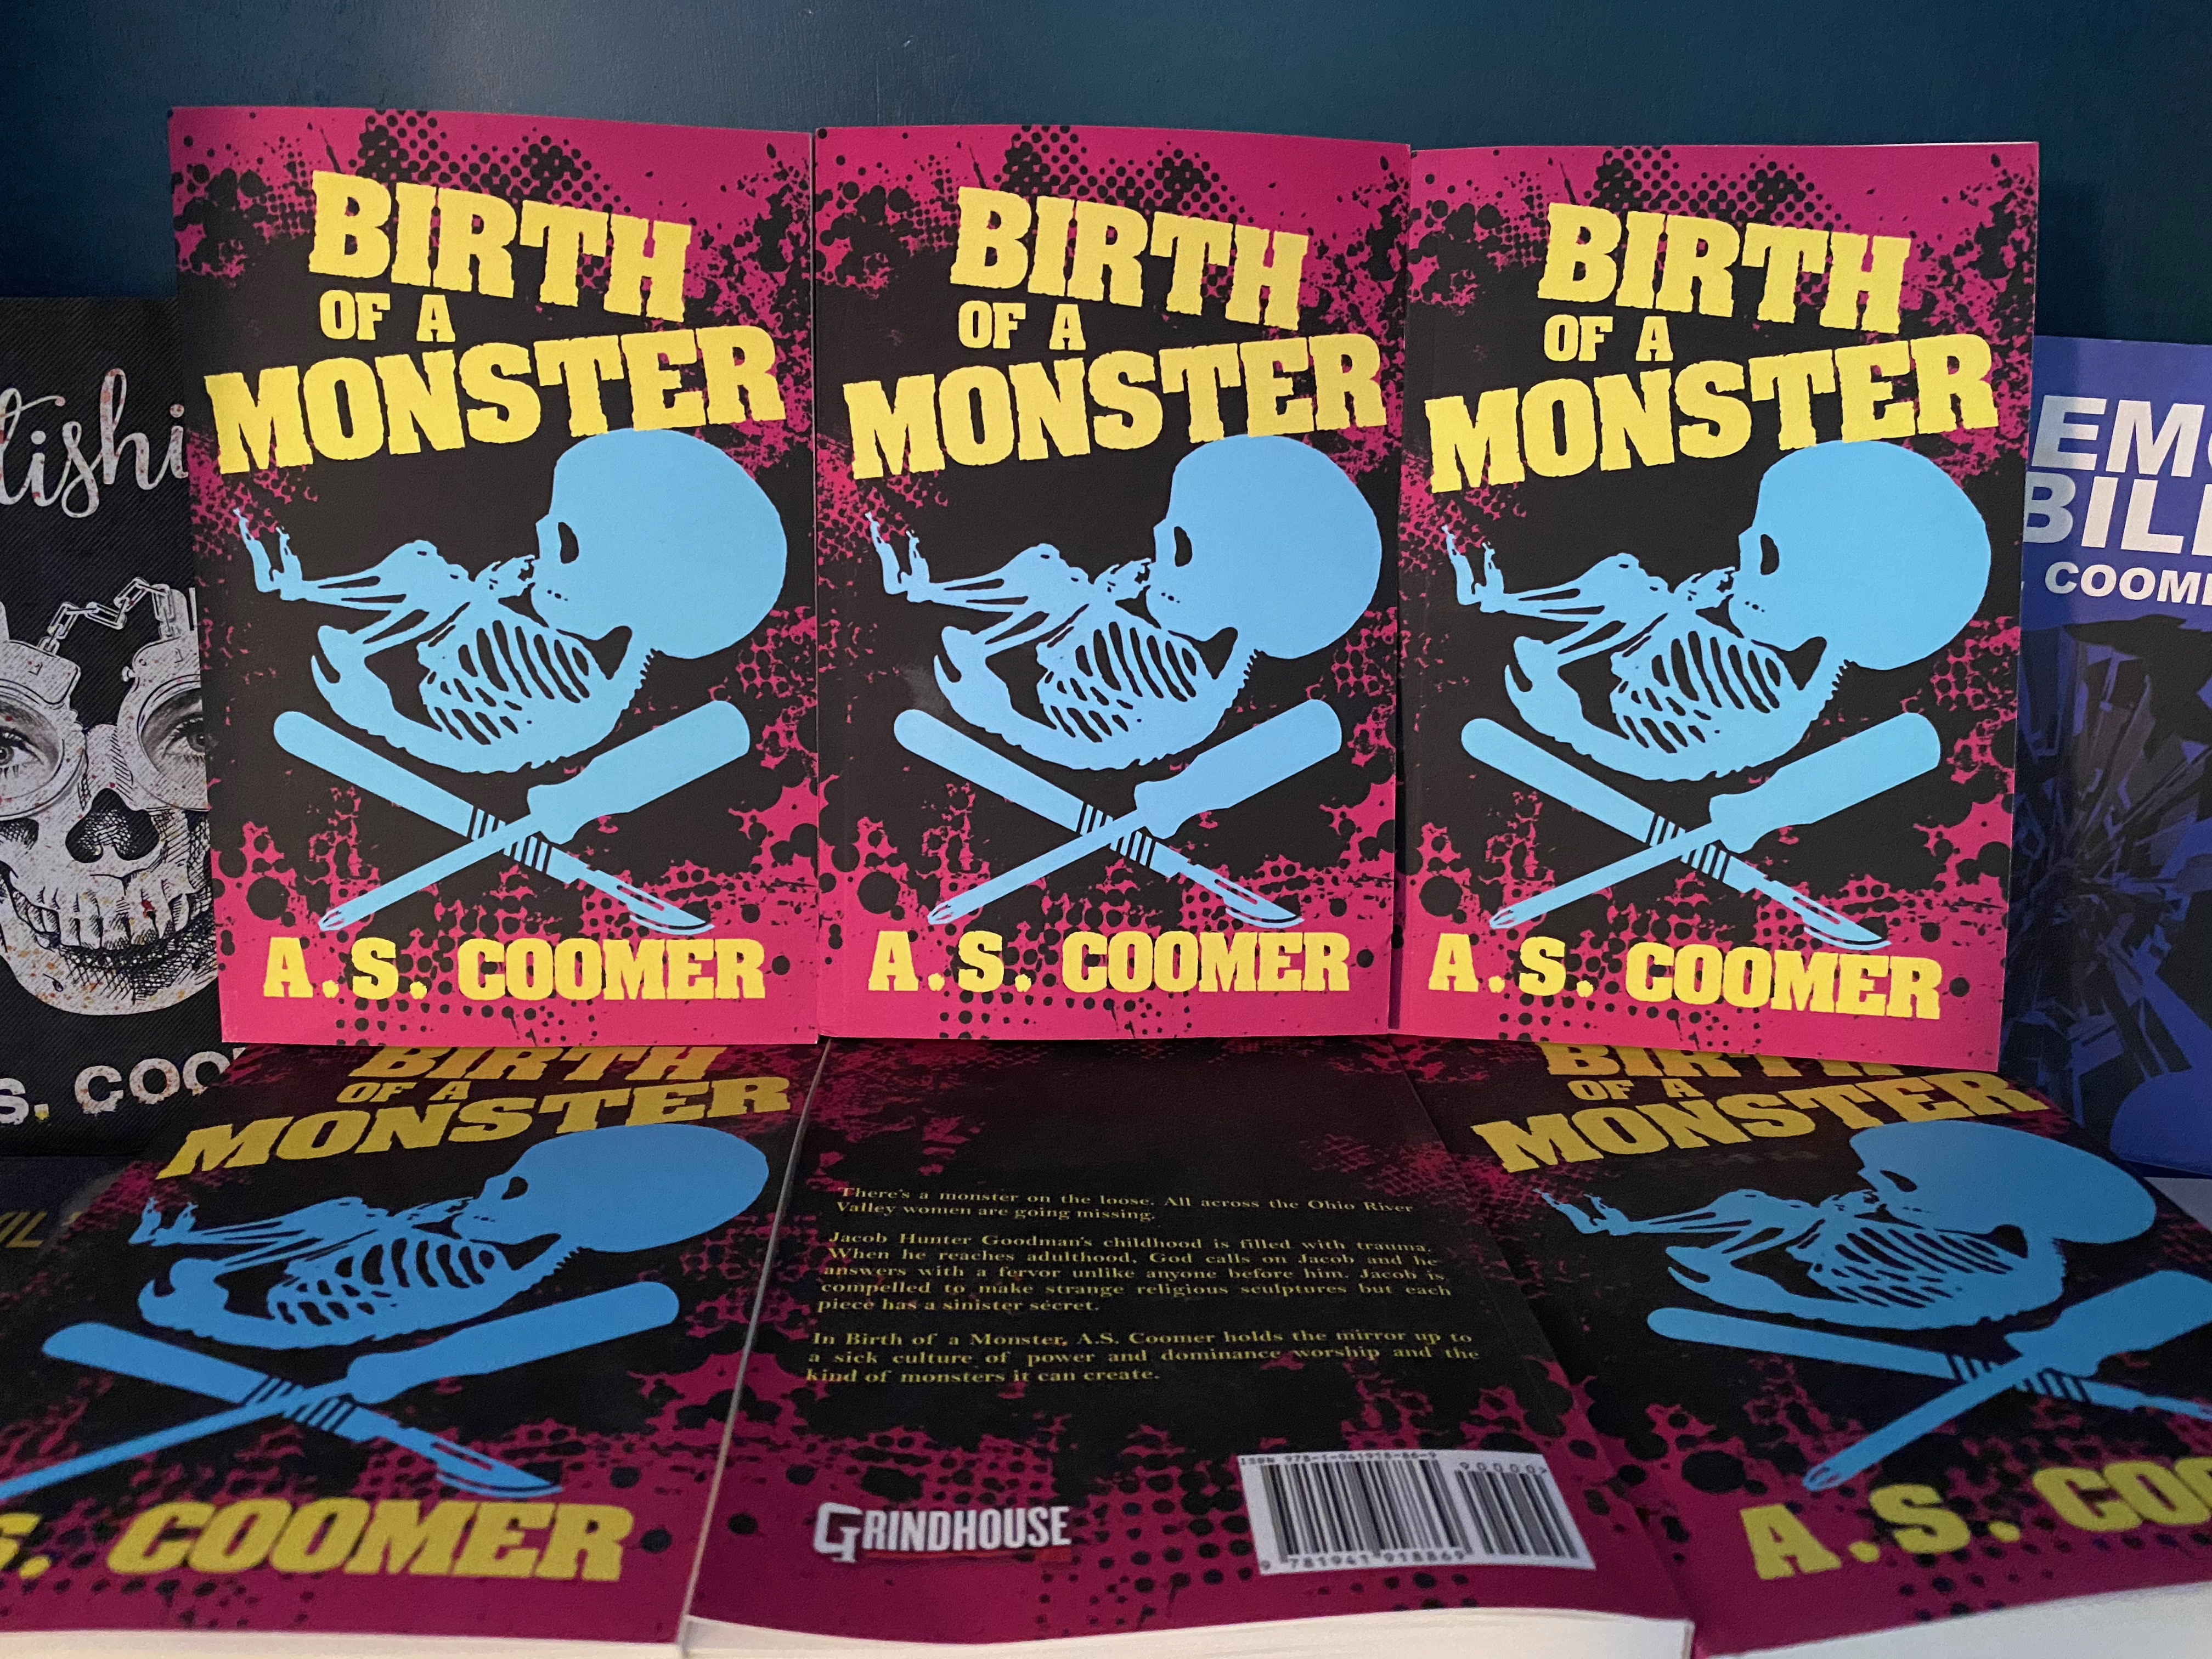 birth-of-a-monster-books-on-shelf